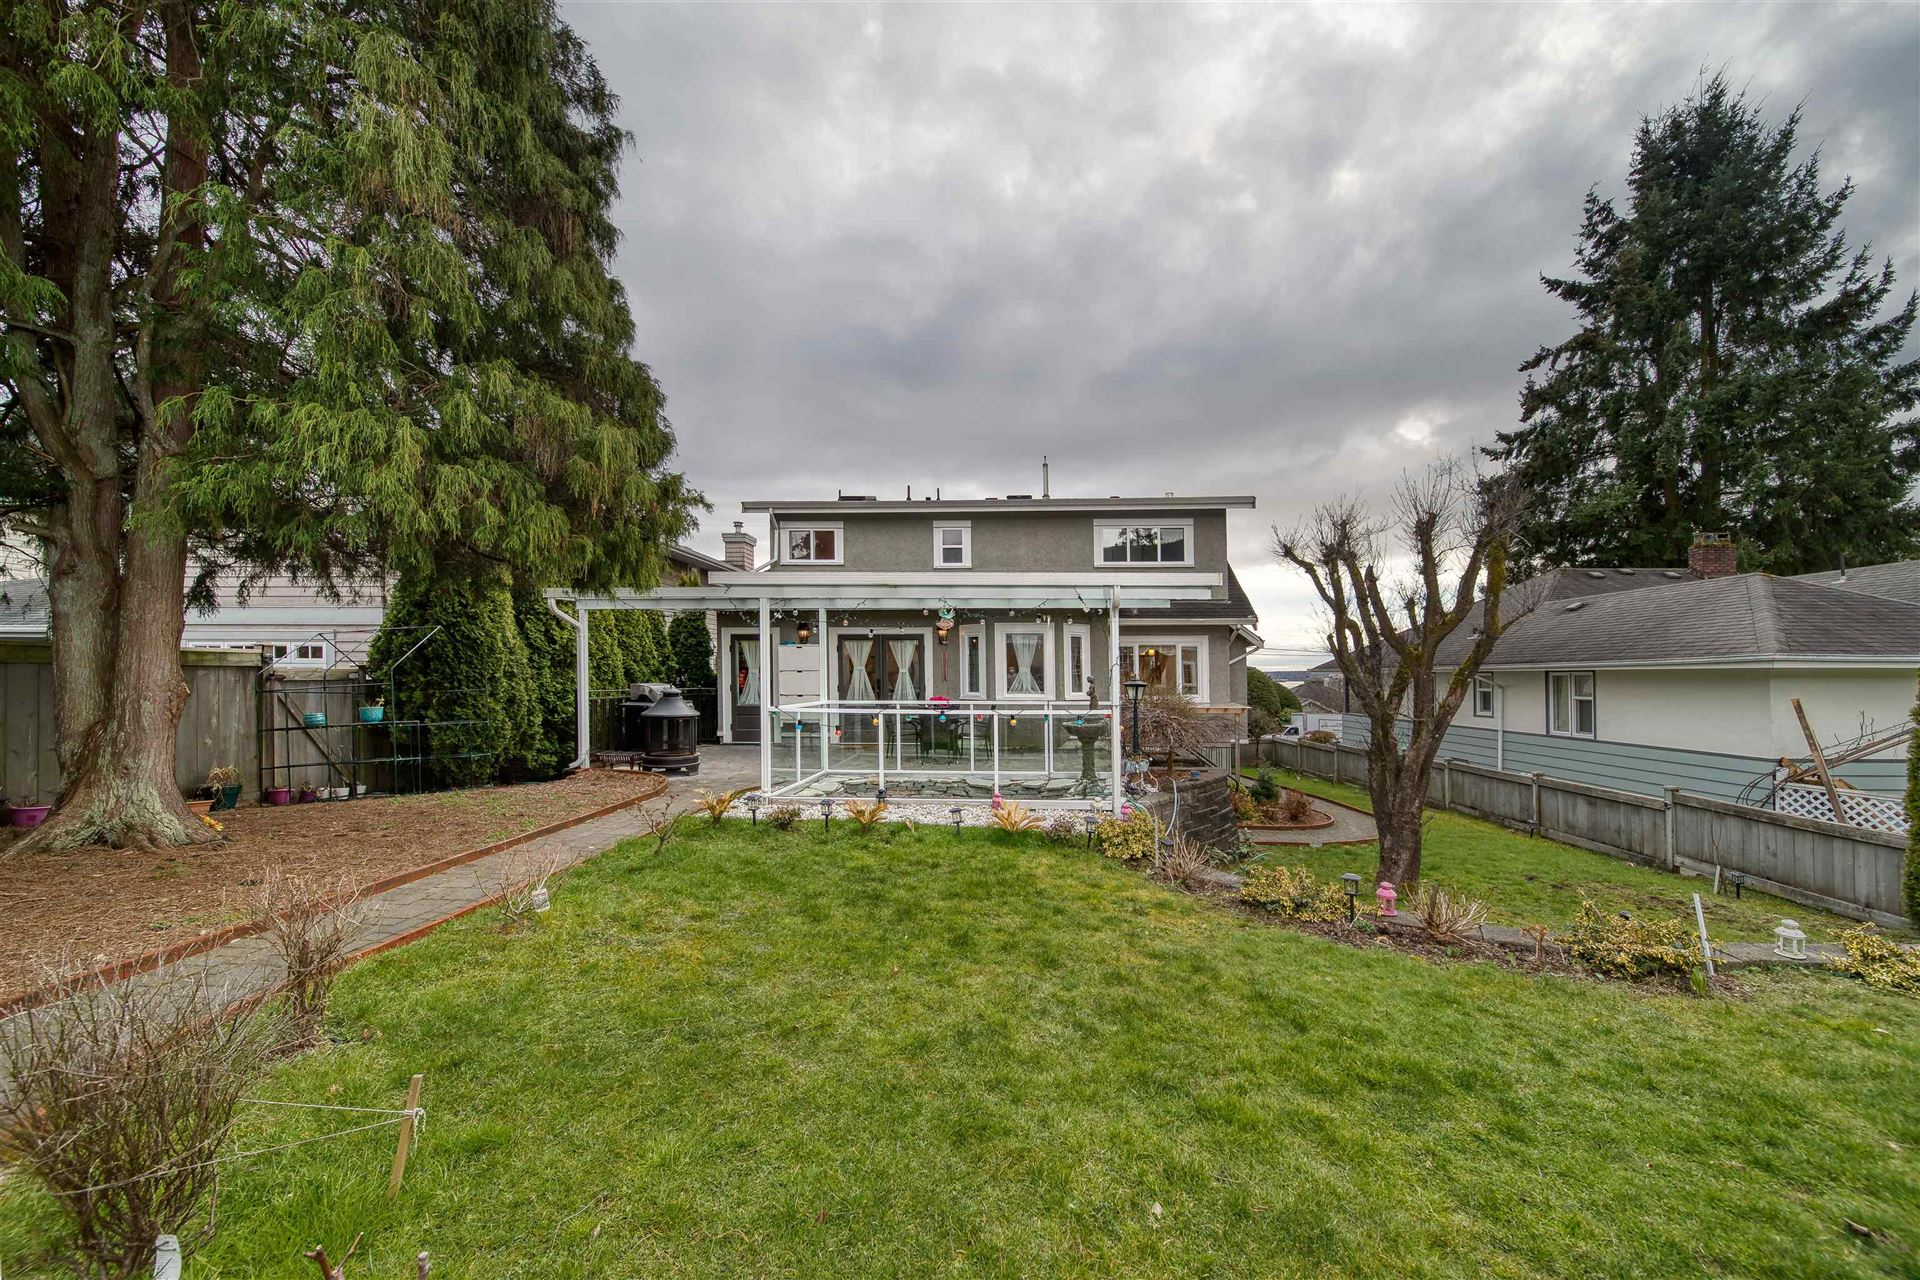 Photo of 1357 FULTON AVENUE, West Vancouver, BC V7T 1N9 (MLS # R2617731)